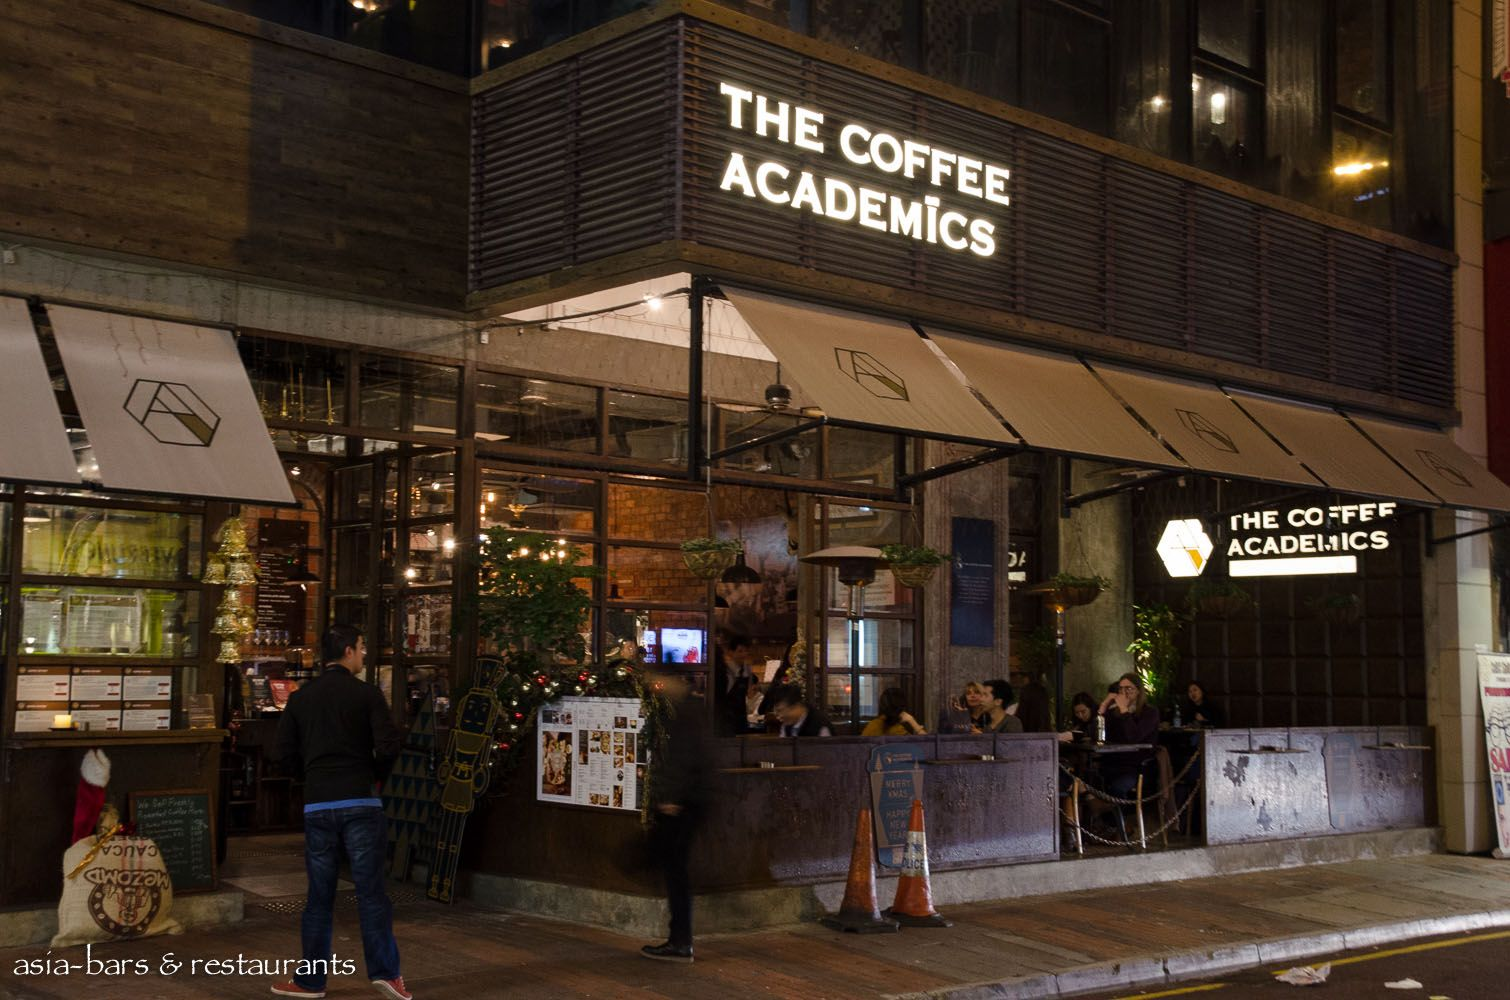 Image Result For The Coffee Academics Hong Kong Restaurant Design Restaurant Bar Restaurant